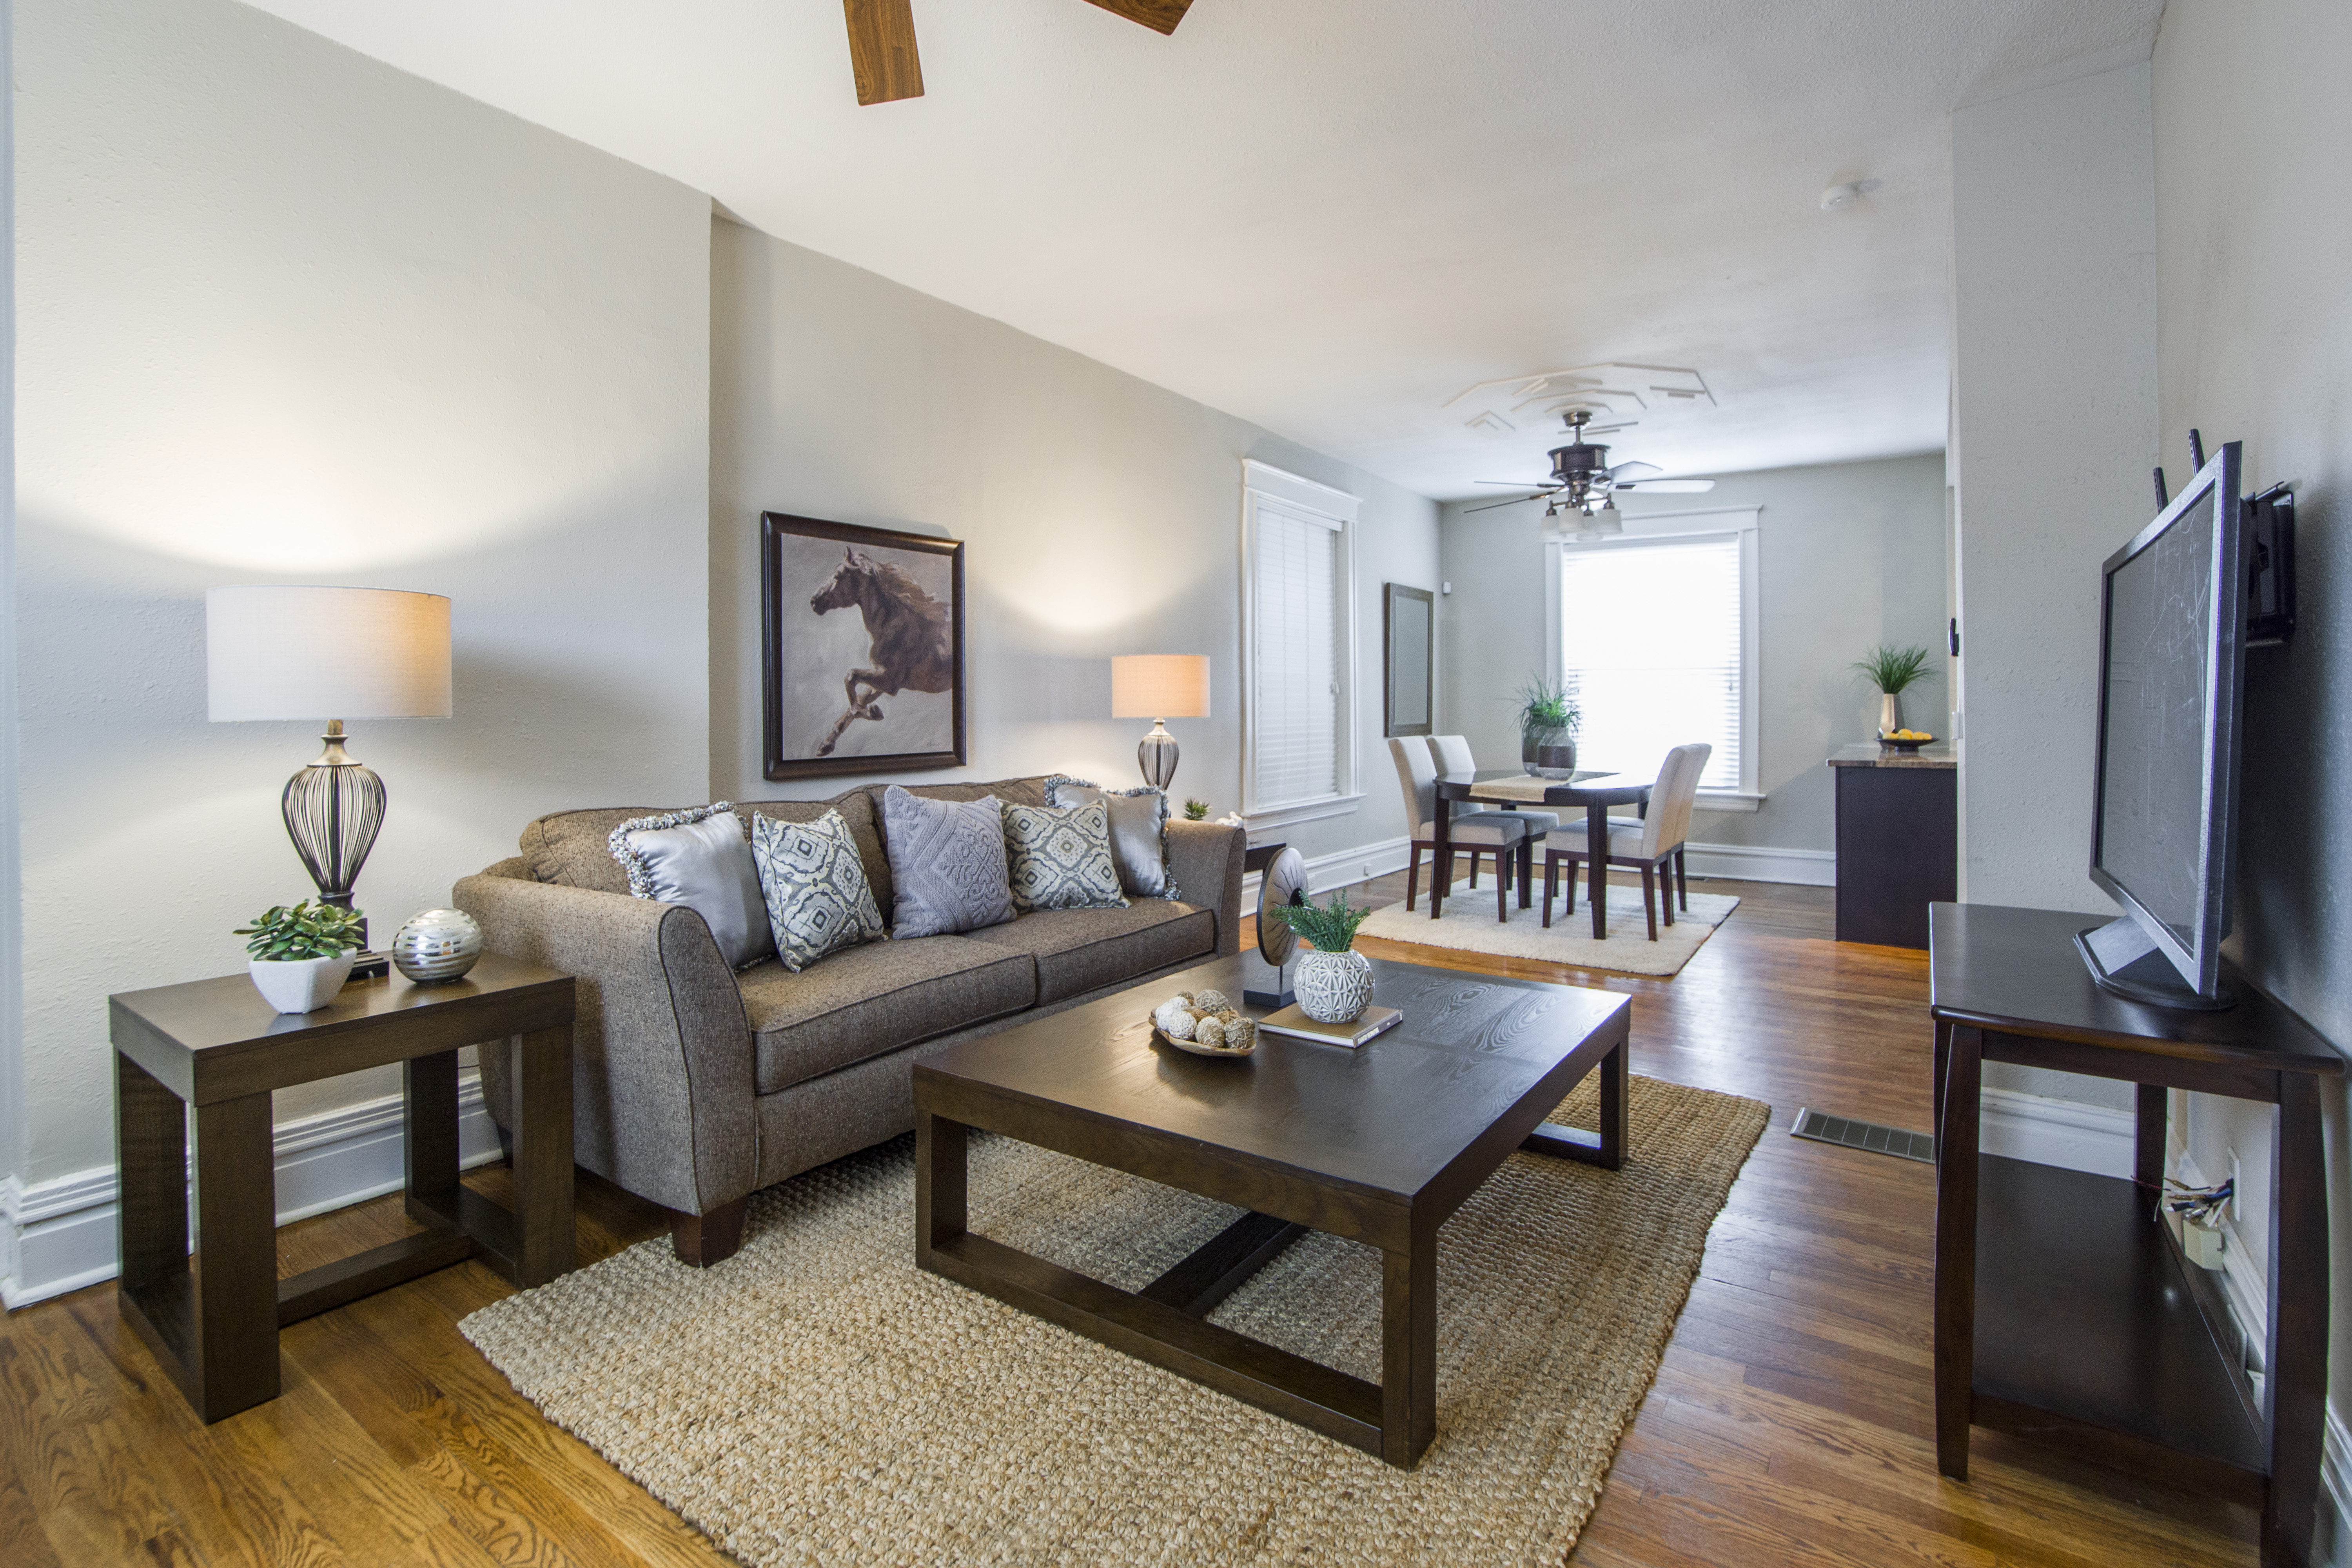 Living Room With Tv, Coffee Table And Sofa